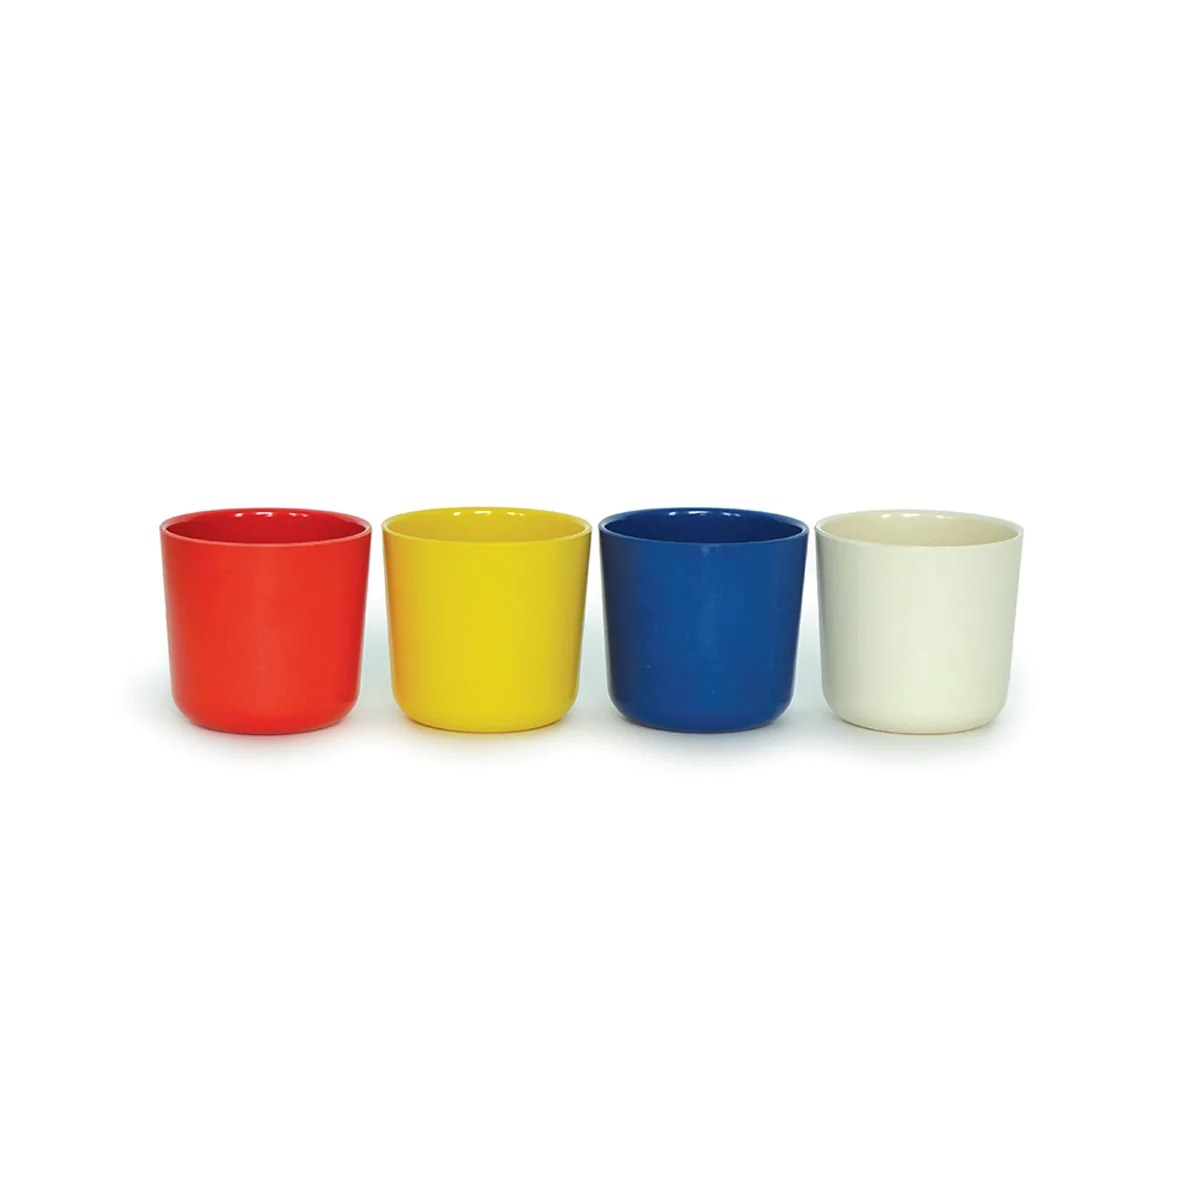 Becher Weiß Ekobo Kinder Becher Set